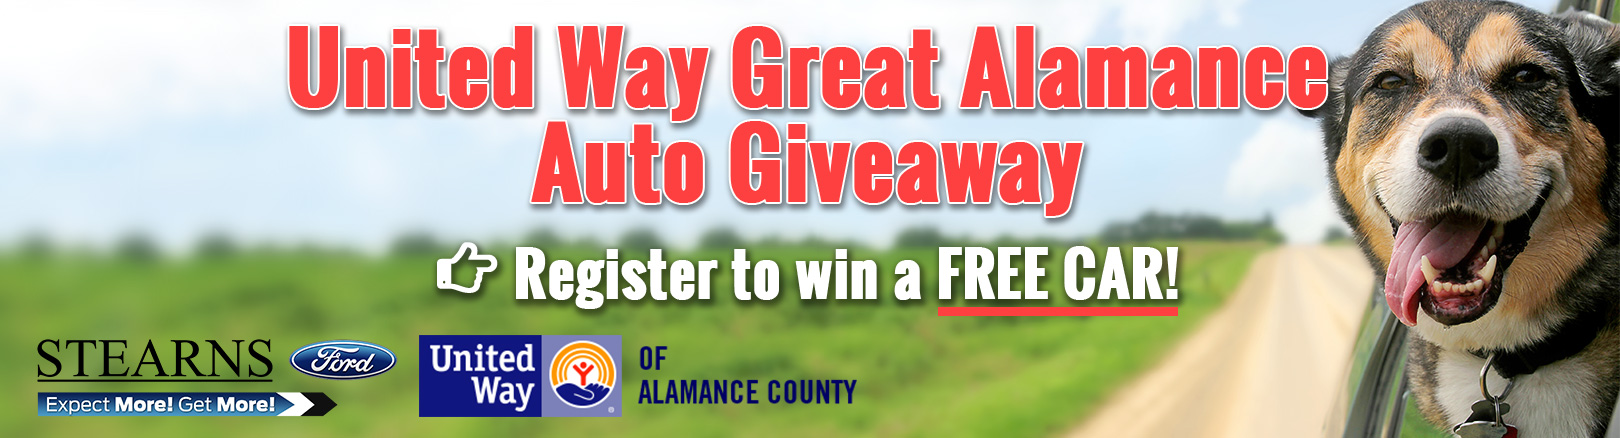 Stearns Ford gives back with the Great Alamance Auto Giveaway. & Stearns Ford Inc   New Ford dealership in Burlington NC 27215 markmcfarlin.com